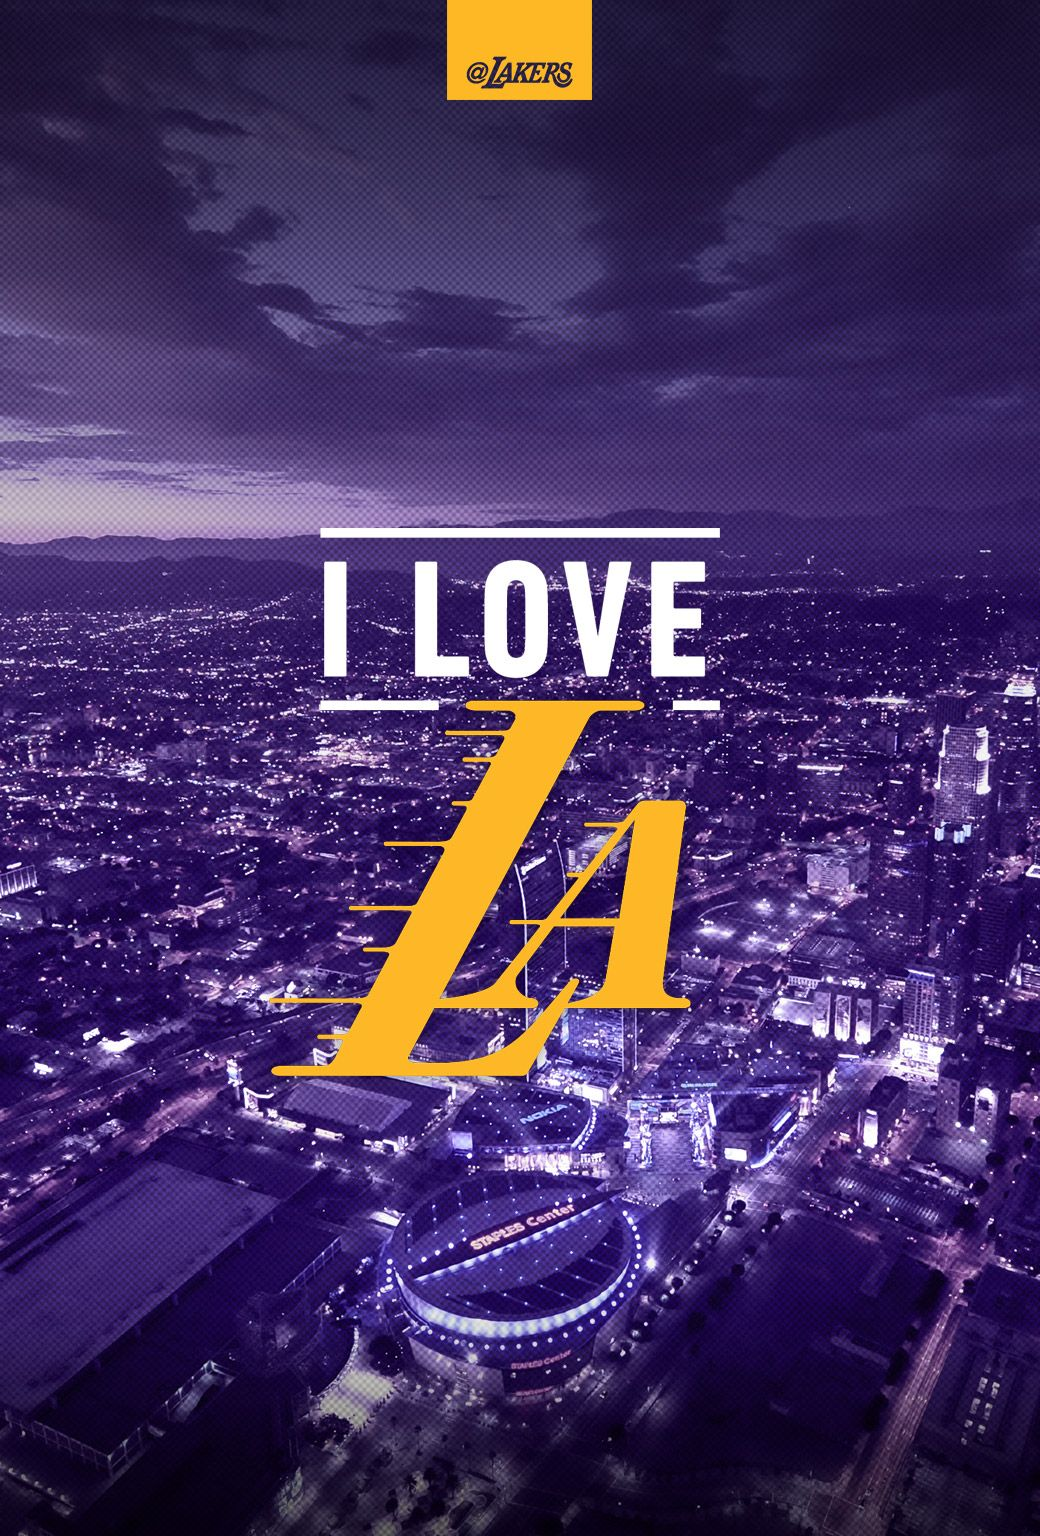 1040x1536 Lakers Wallpapers and Infographics | Los Angeles Lakers